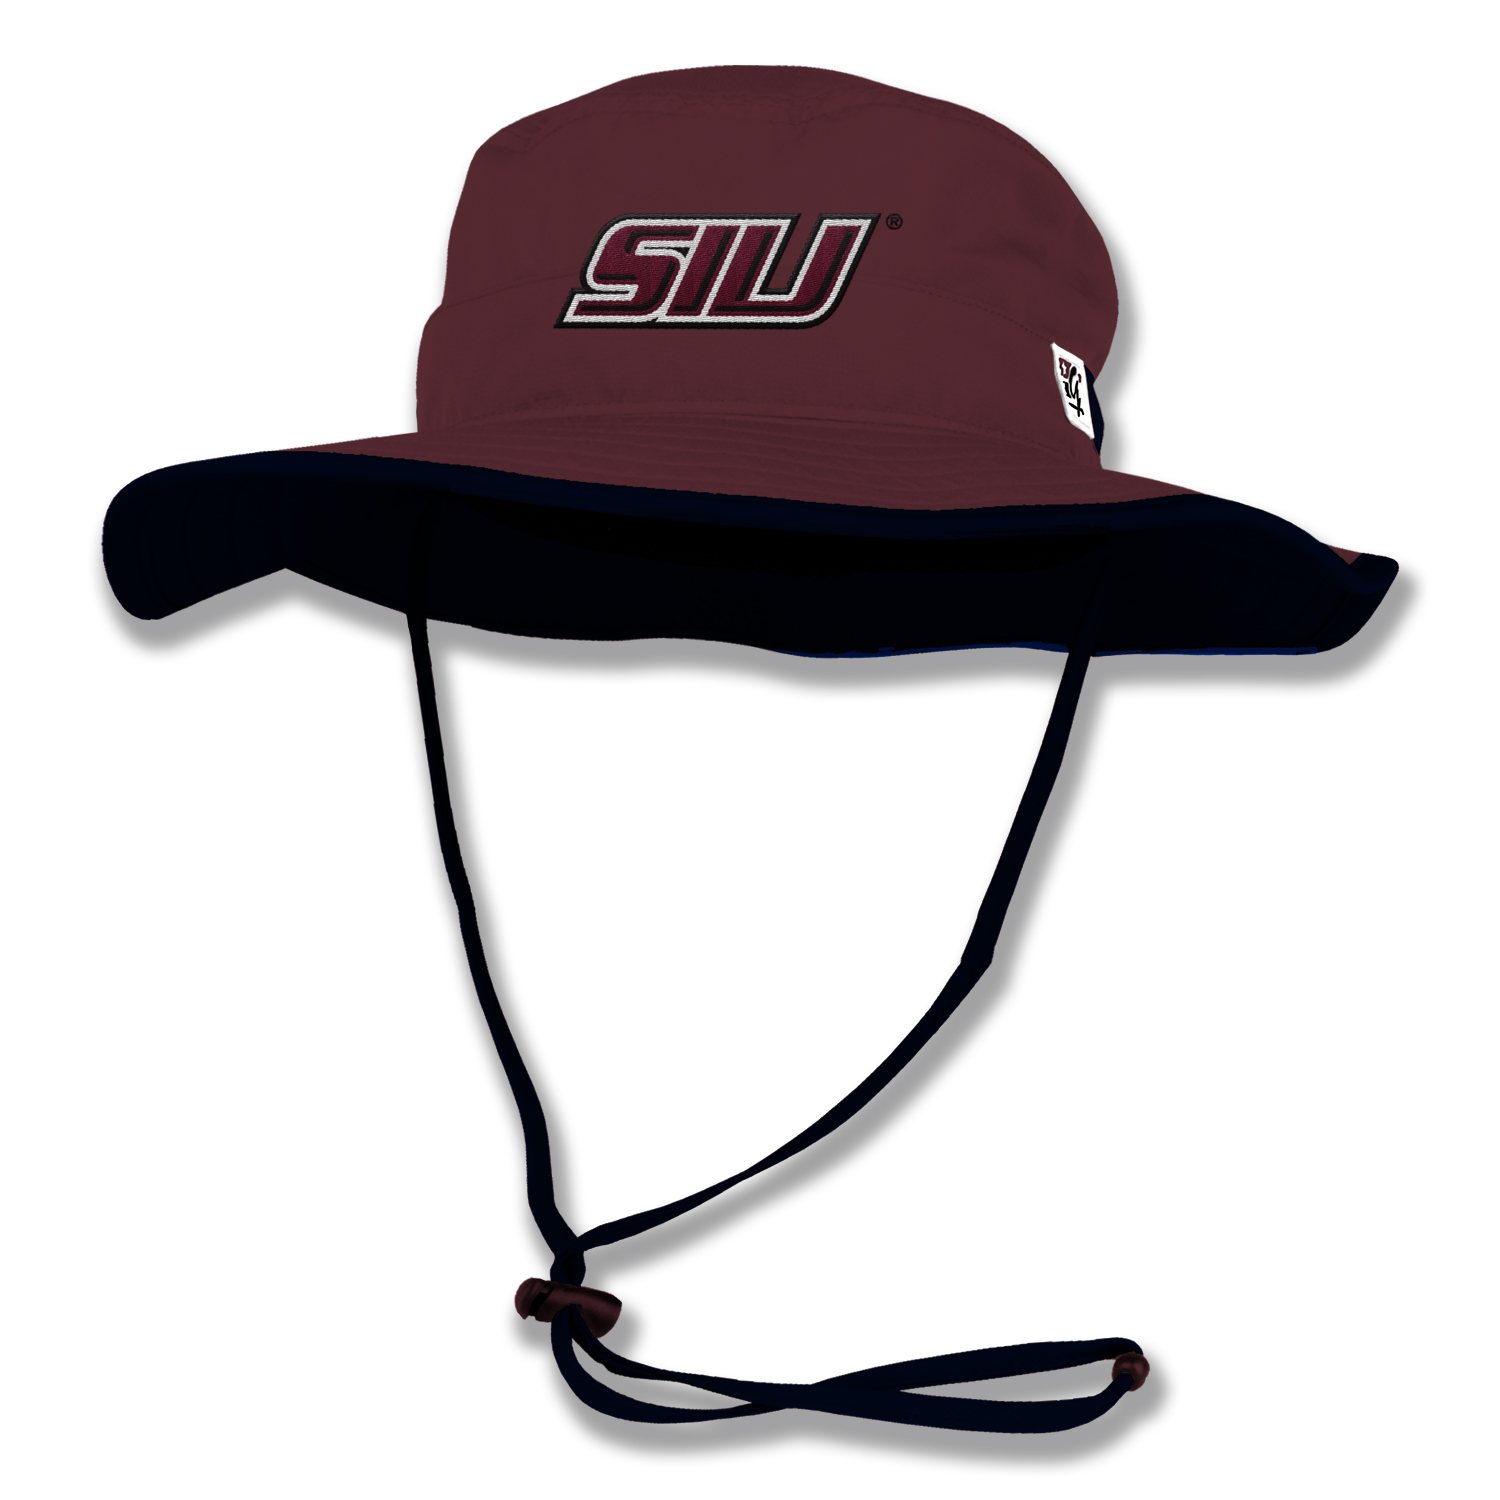 Image for the THE GAME® SIU GAMECHANGER BOONIE HAT product